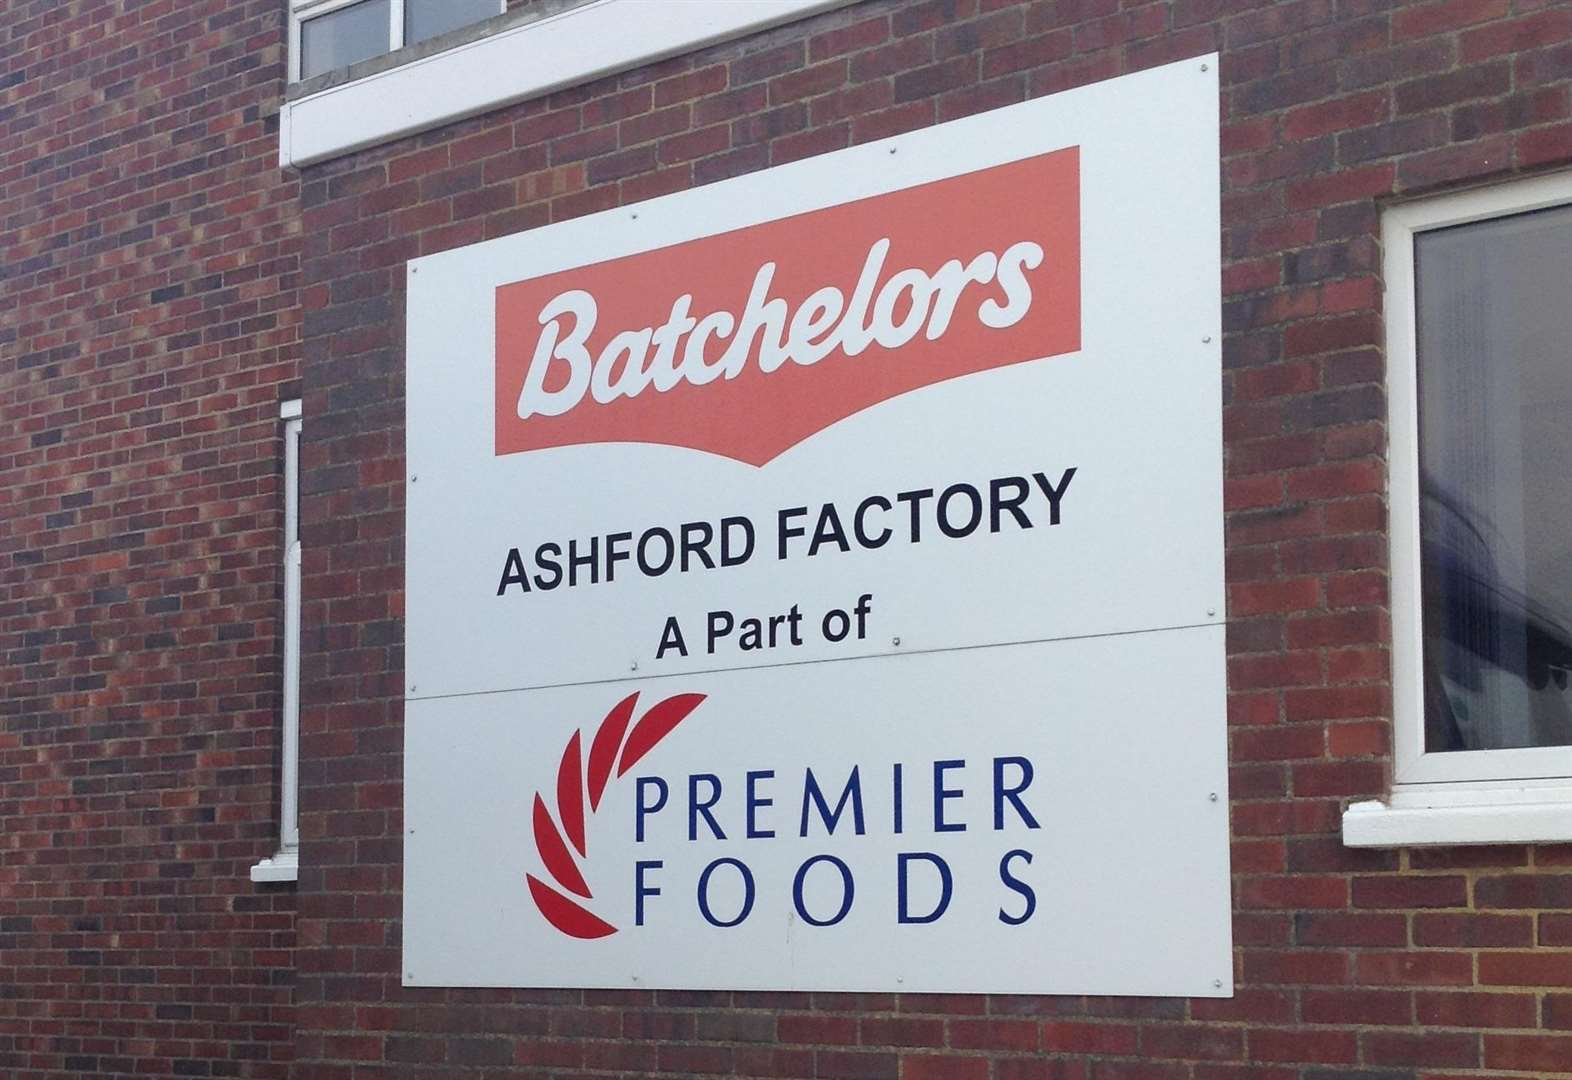 Food factory delight as financial report cooks up positive future